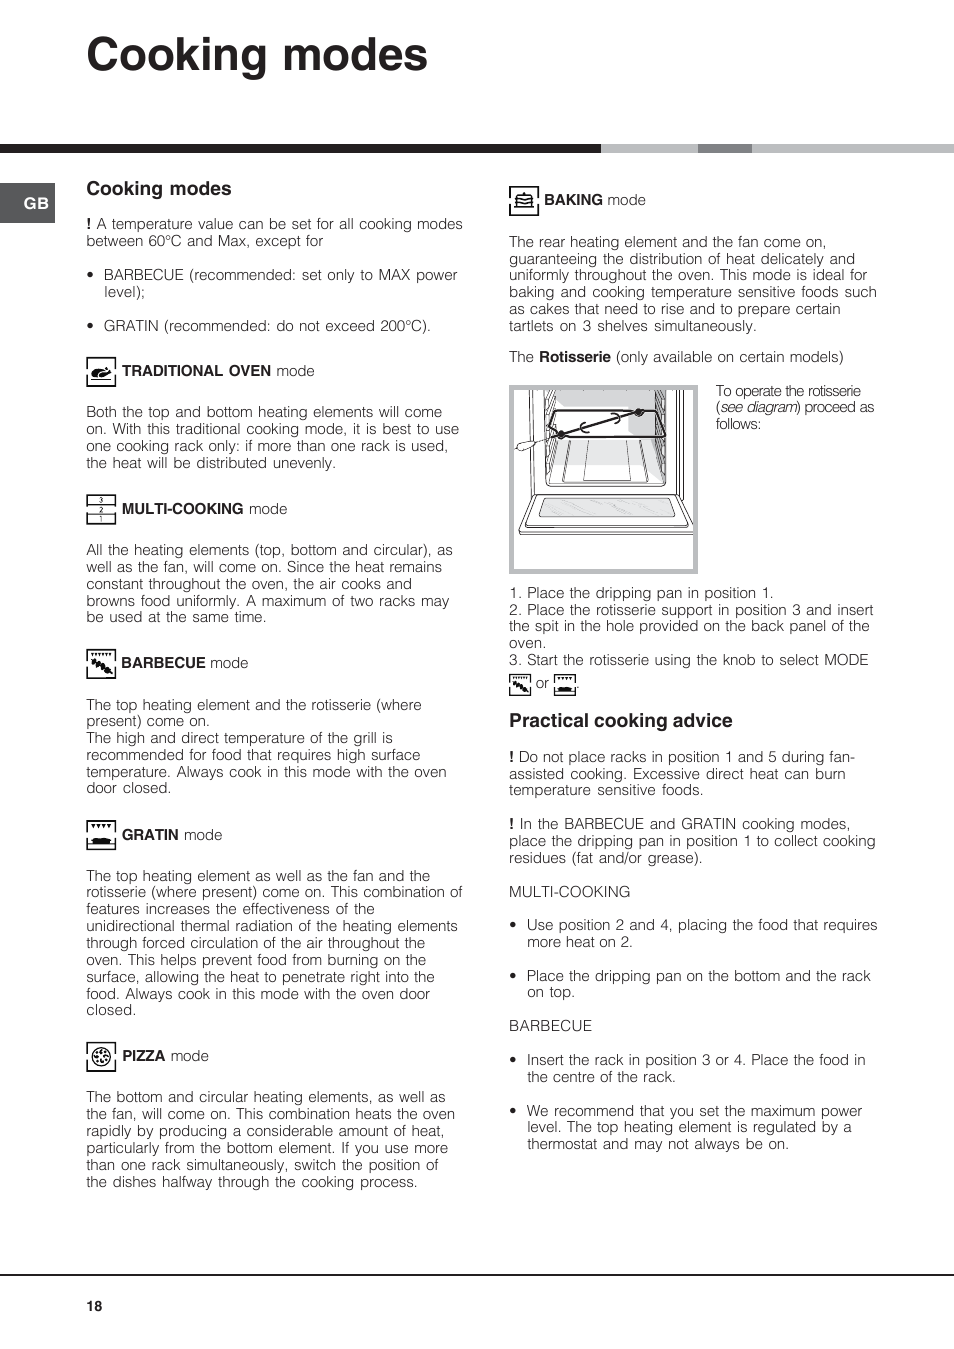 Cooking Modes Practical Cooking Advice Hotpoint Ariston Diamond